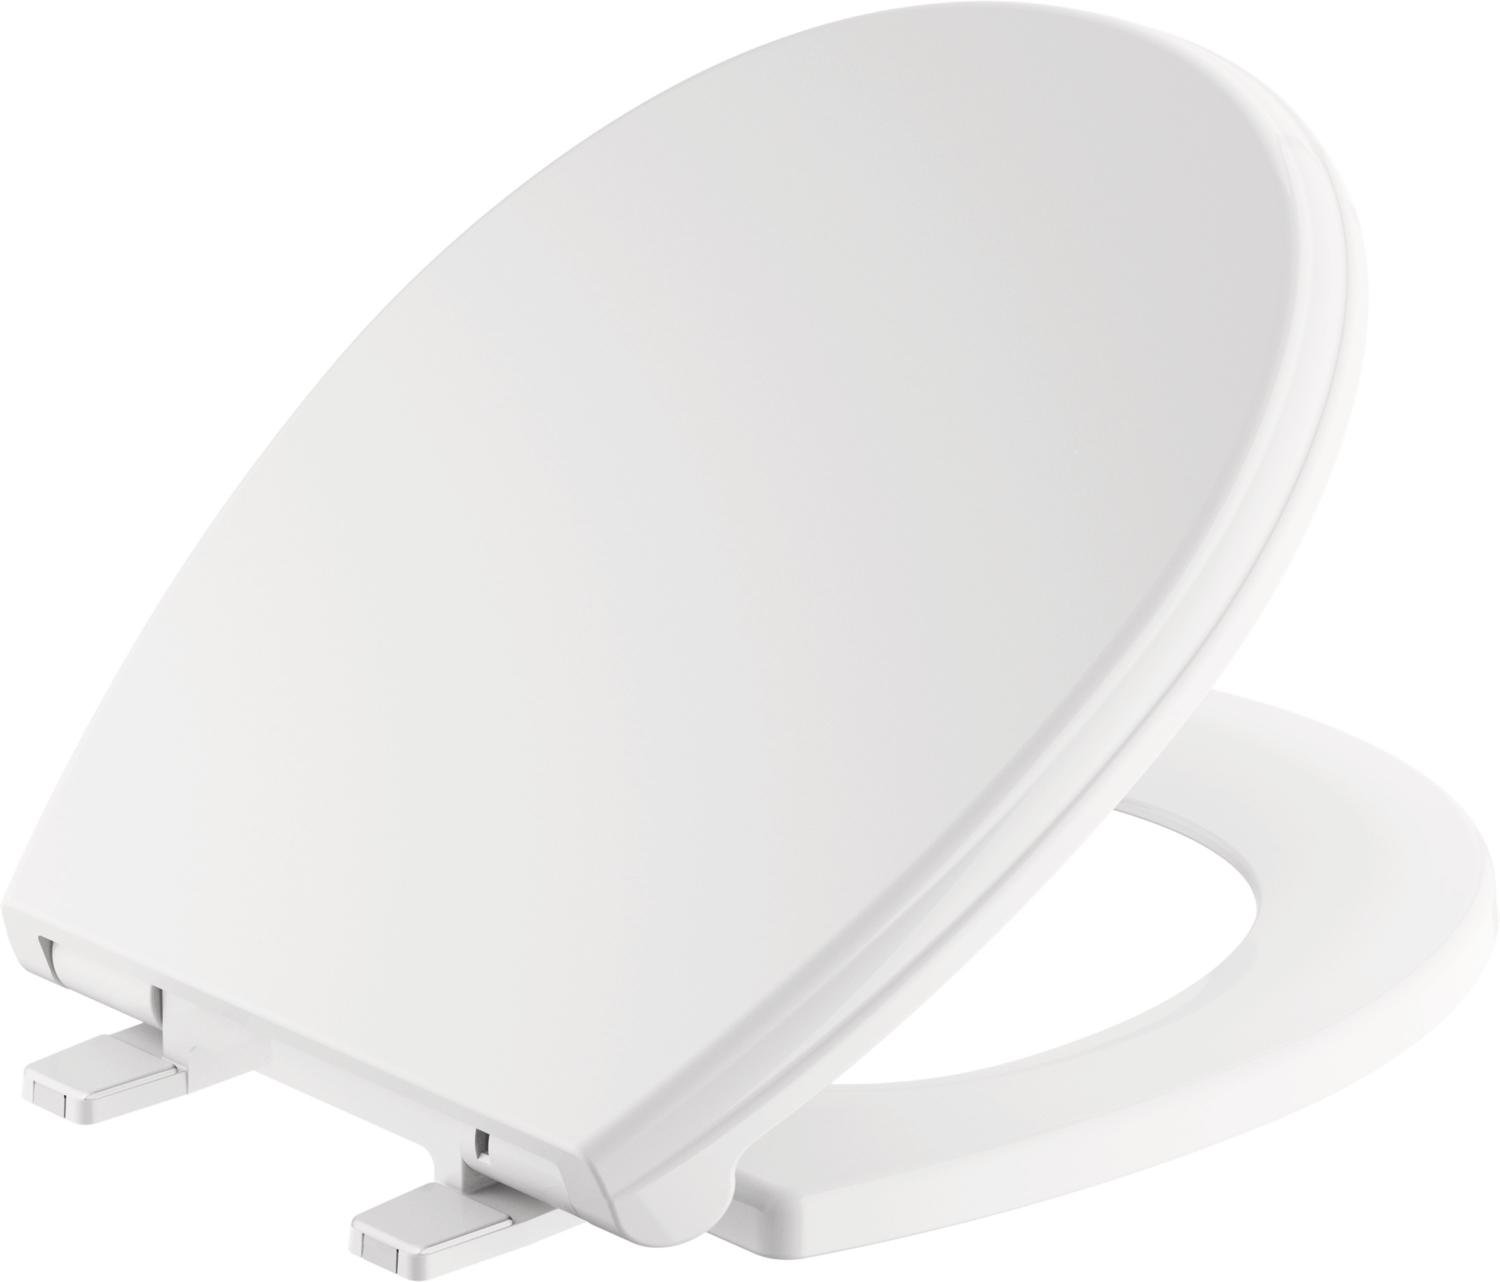 Delta Faucet 801901-WH Wycliffe Round Front Slow-Close Toilet Seat with Non-slip Seat Bumpers, White by DELTA FAUCET